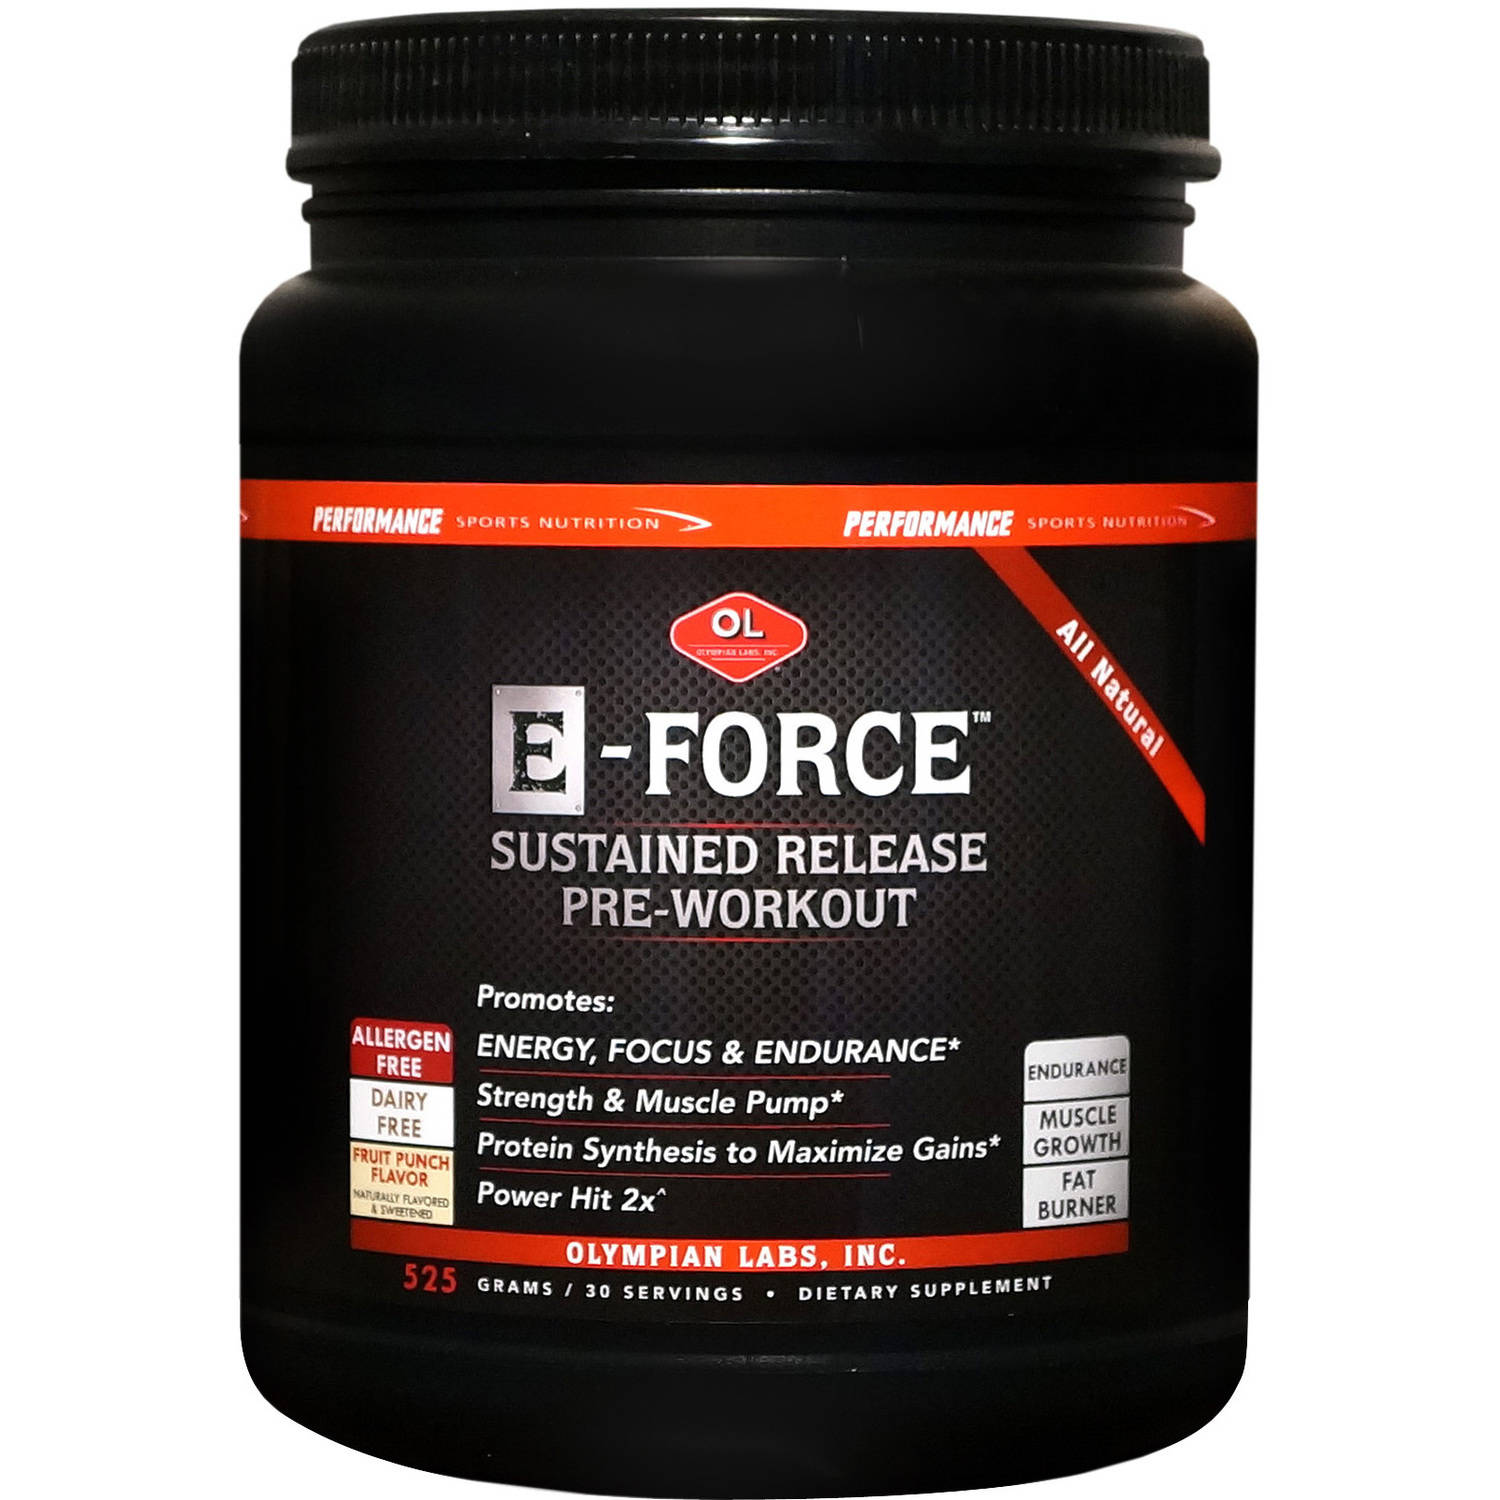 Olympian Labs E-FORCE Sustained Release Pre-Workout Fruit Punch Flavor Dietary Supplement, 525g